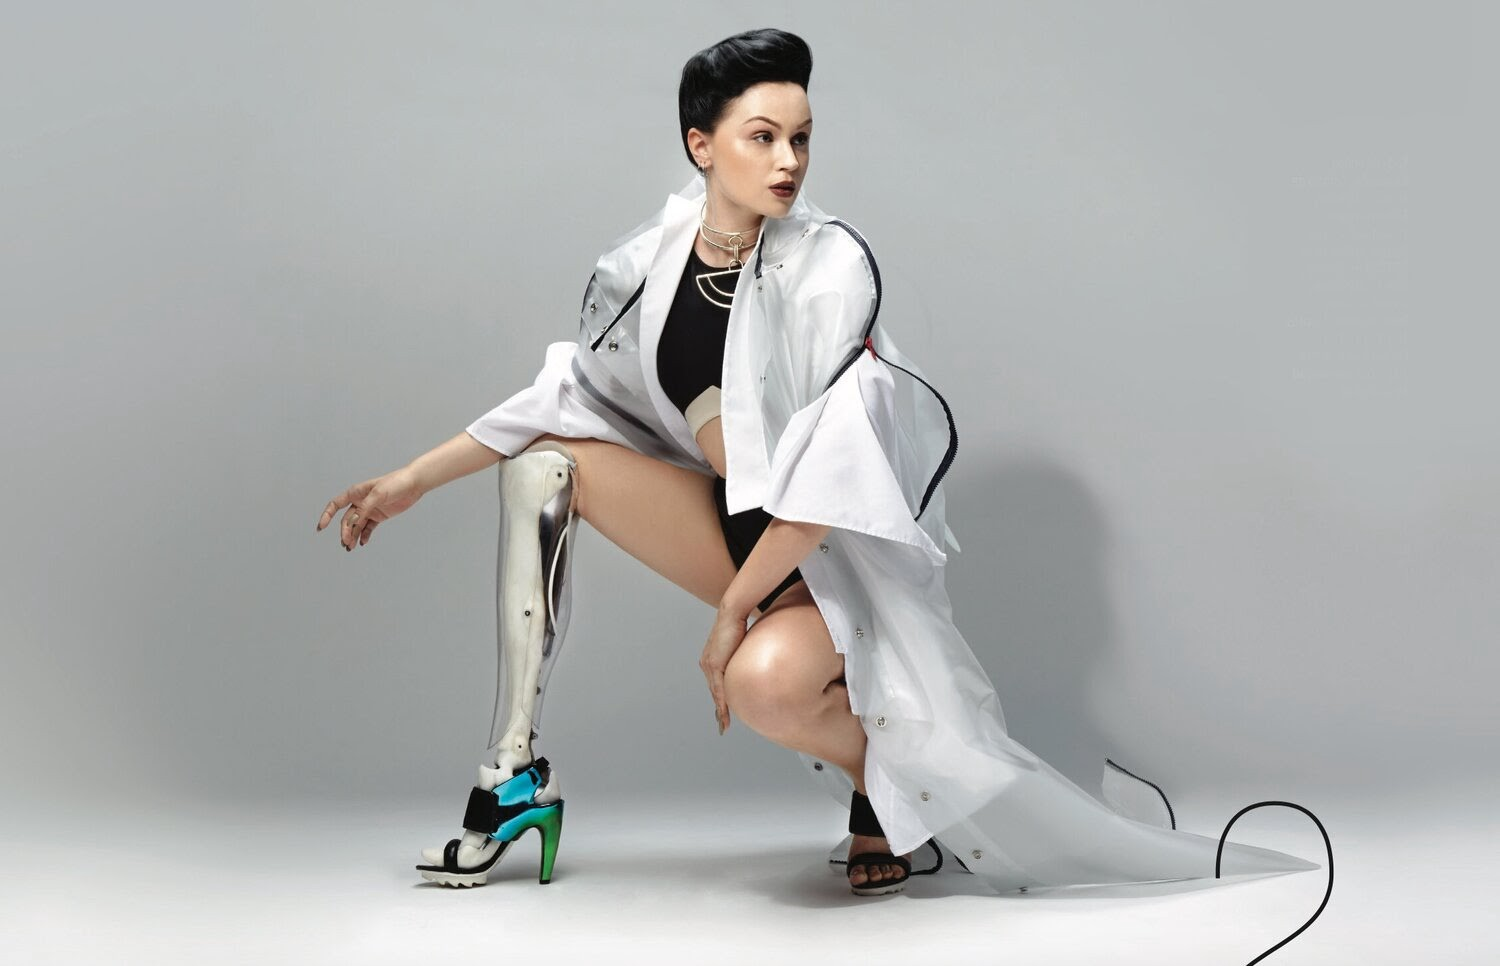 Cyborg Artist Viktoria Modesta crouching down showing off her metal leg in a heel, wearing a long white trench coat